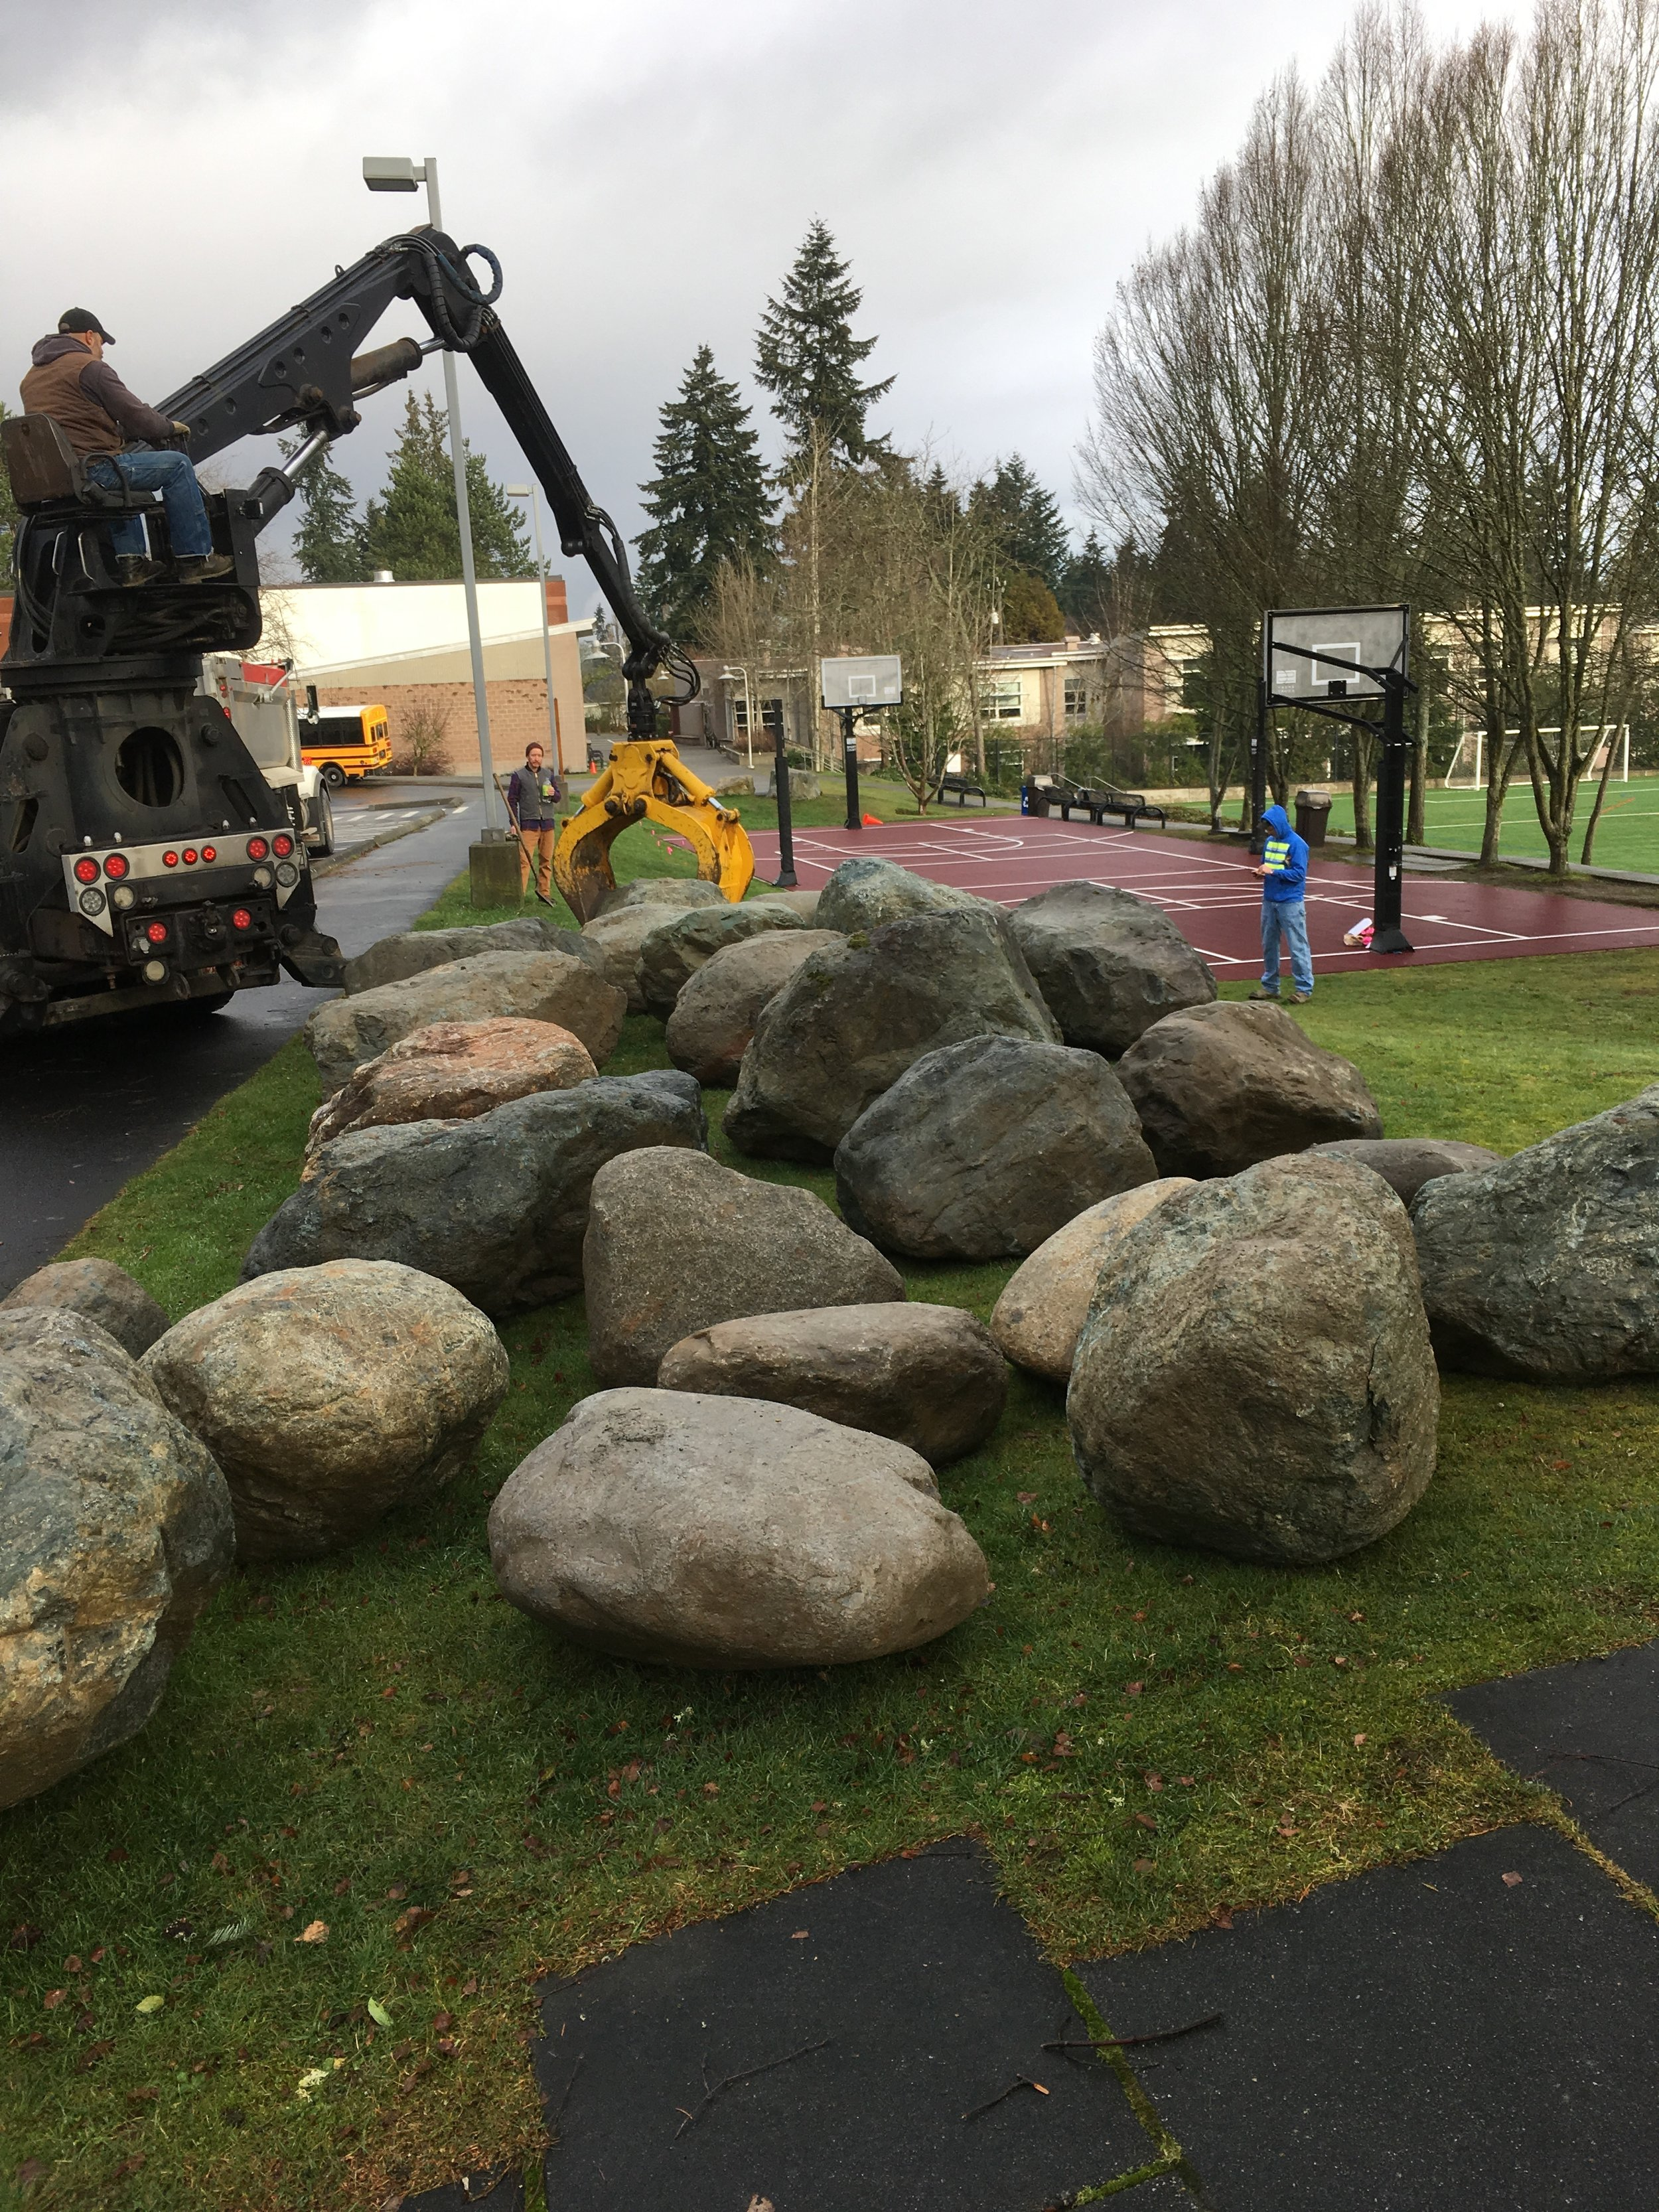 A field of hand-selected glacial erratic boulders await layout!